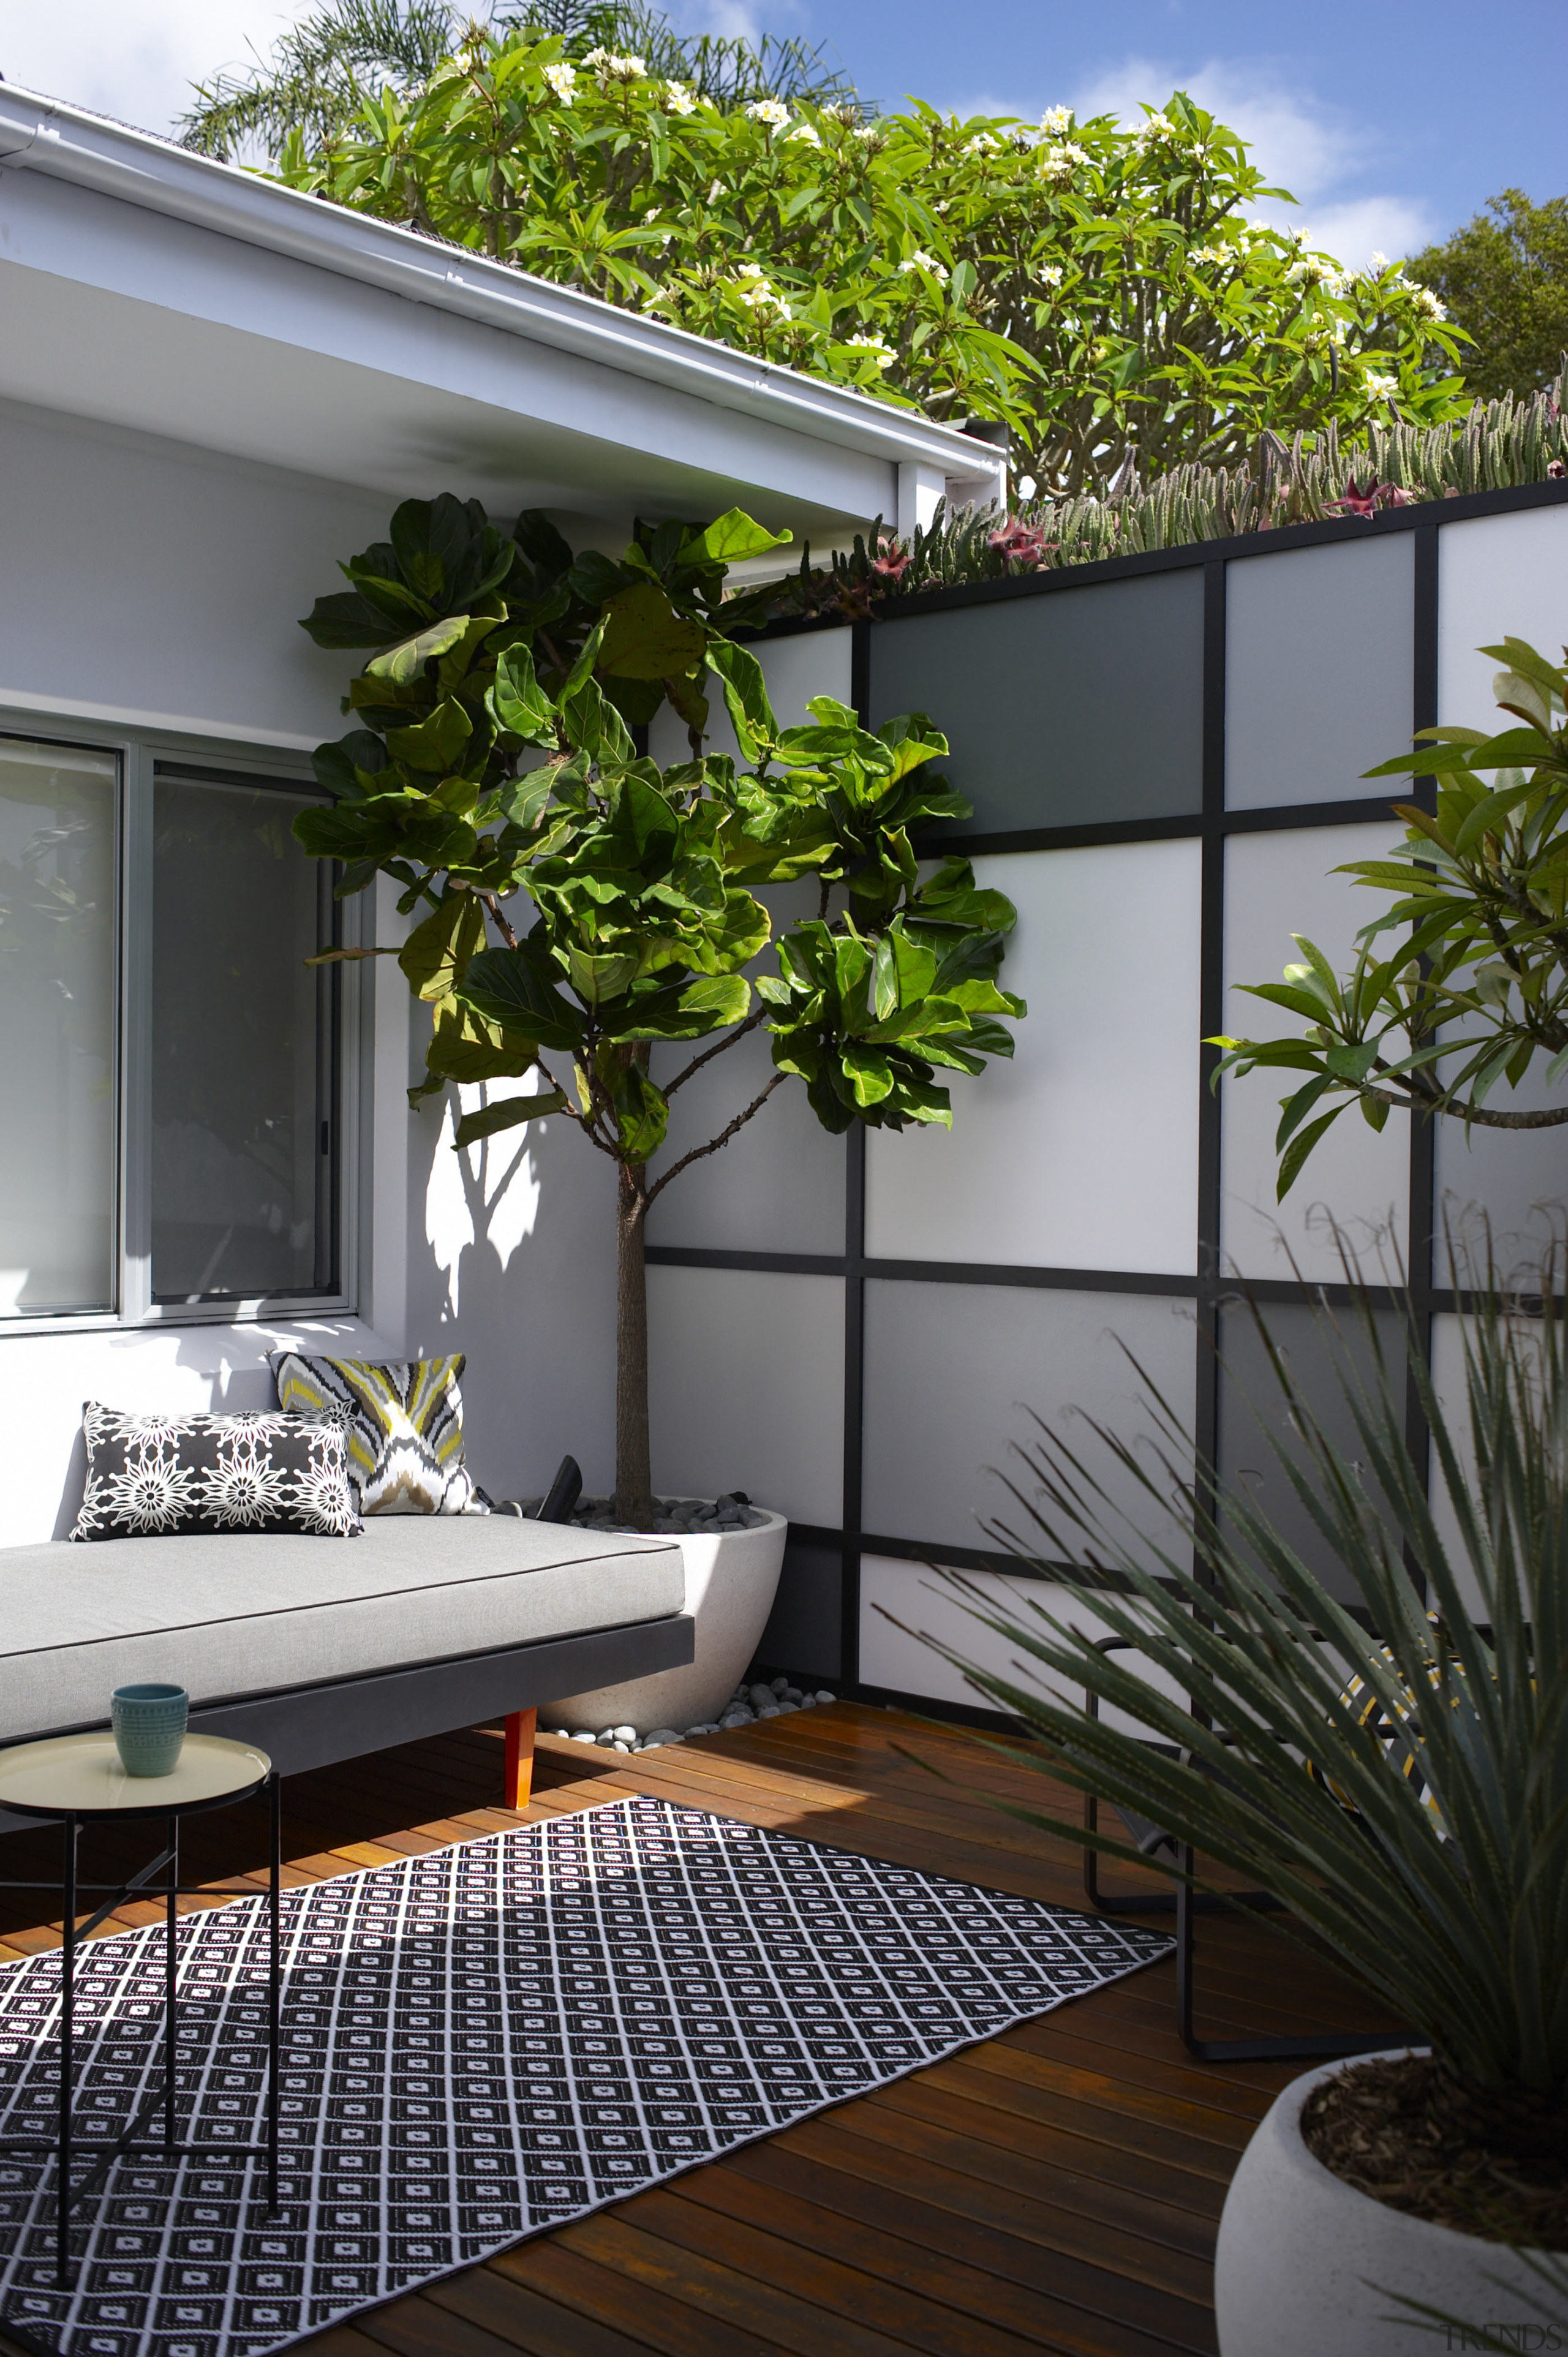 The extensively renovated house has an internal courtyard architecture, arecales, balcony, courtyard, home, house, houseplant, interior design, outdoor structure, plant, property, real estate, tree, window, gray